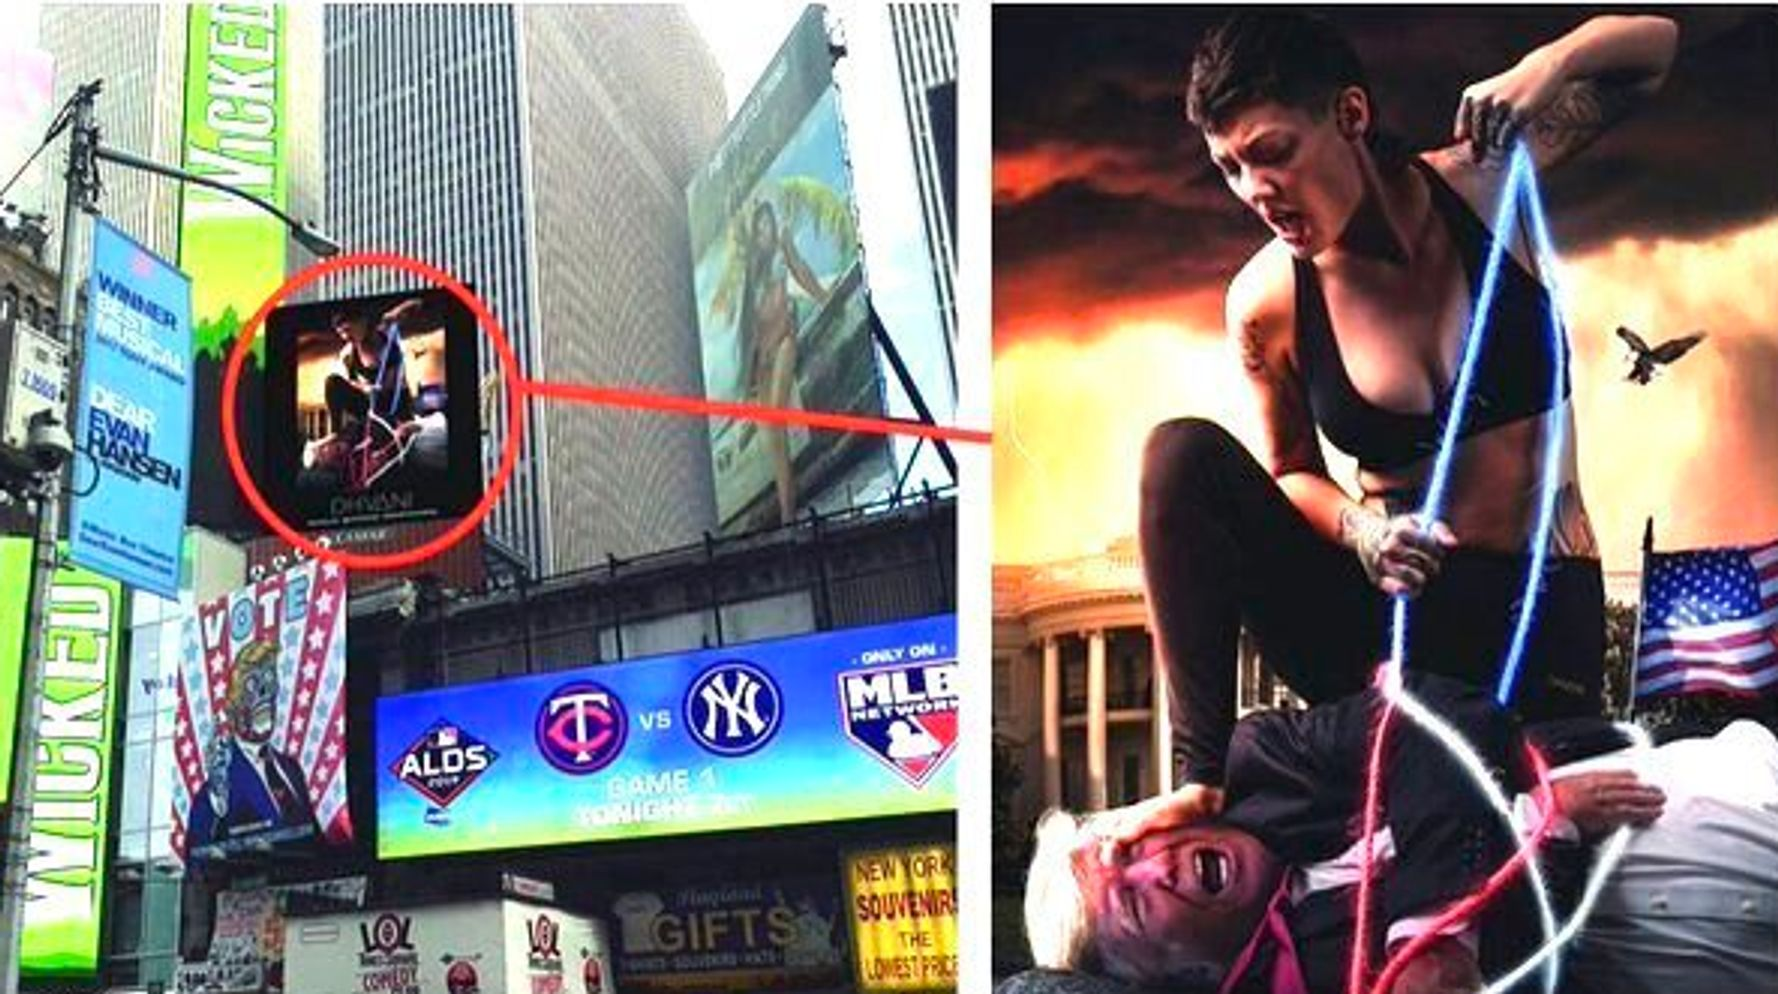 Westlake Legal Group 5dad0413210000ff1dad3595 Startling Giant Times Square Ad Shows Marine Vet With Hogtied 'Trump'